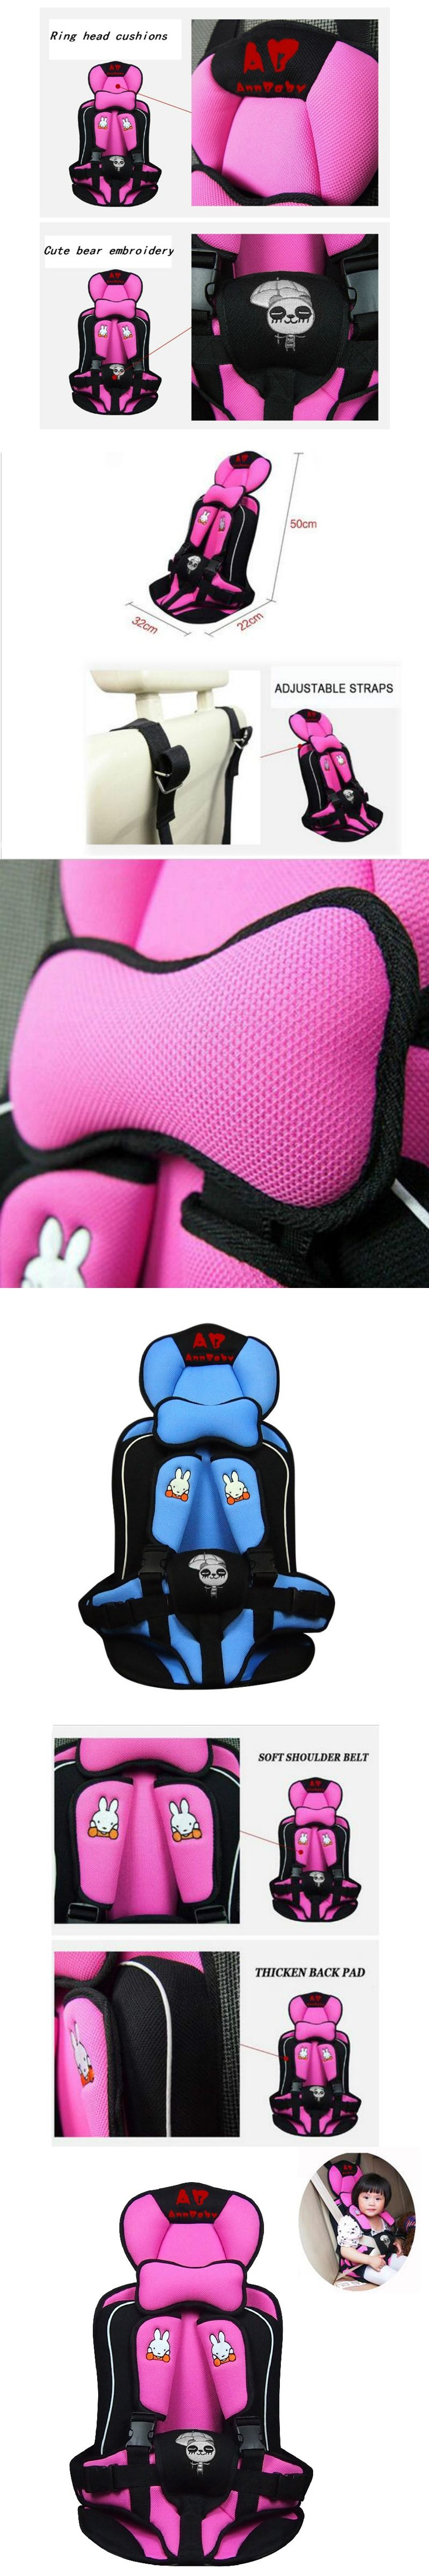 Boys And Girls Car Child Seat Portable Infant Rabbit Pattern Booster Seats Cushion For Toddlers Pink Blue